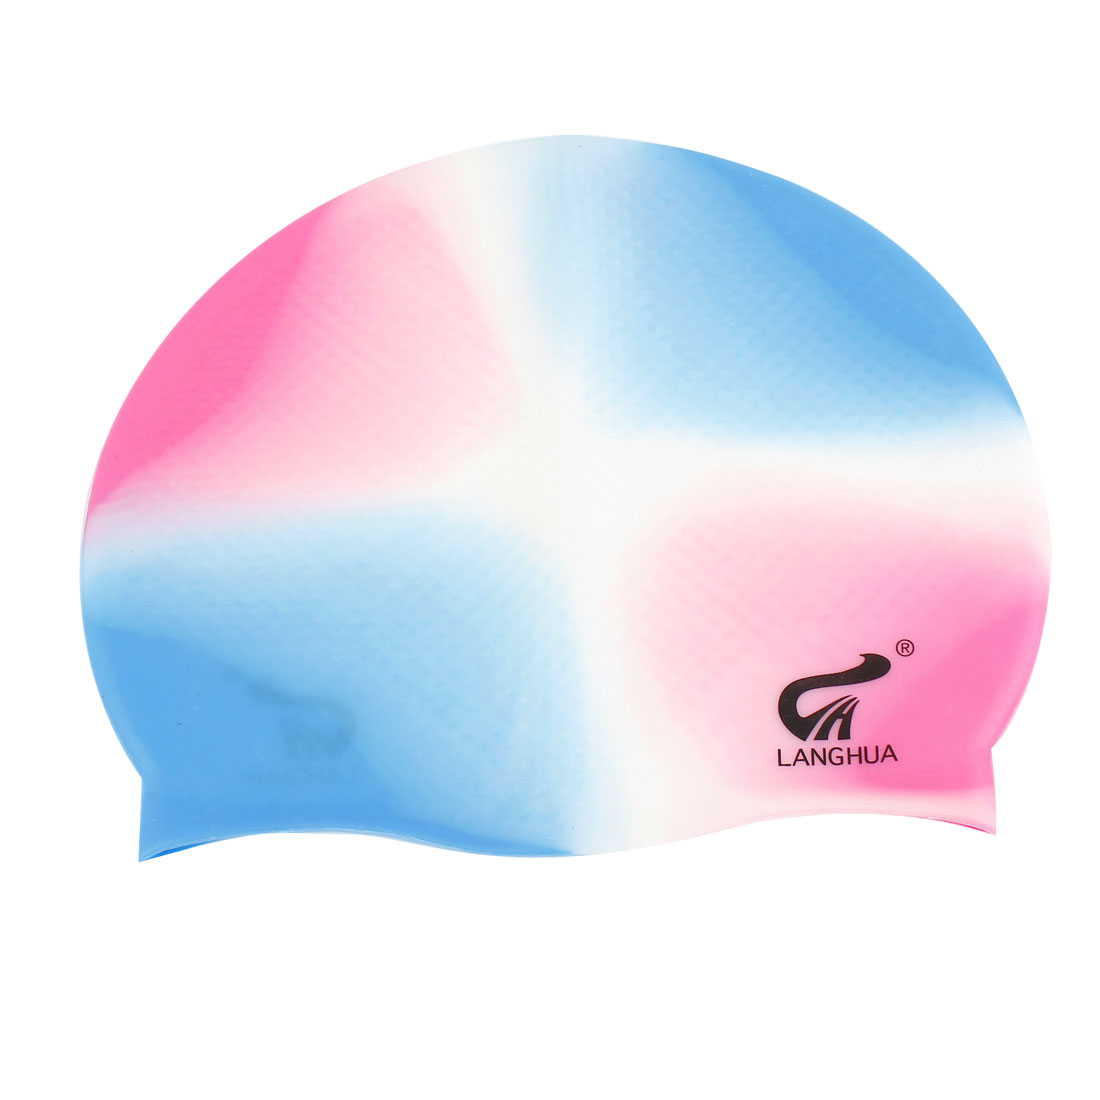 Elastic Swim Swimming Cap White Pink Blue for Women Men